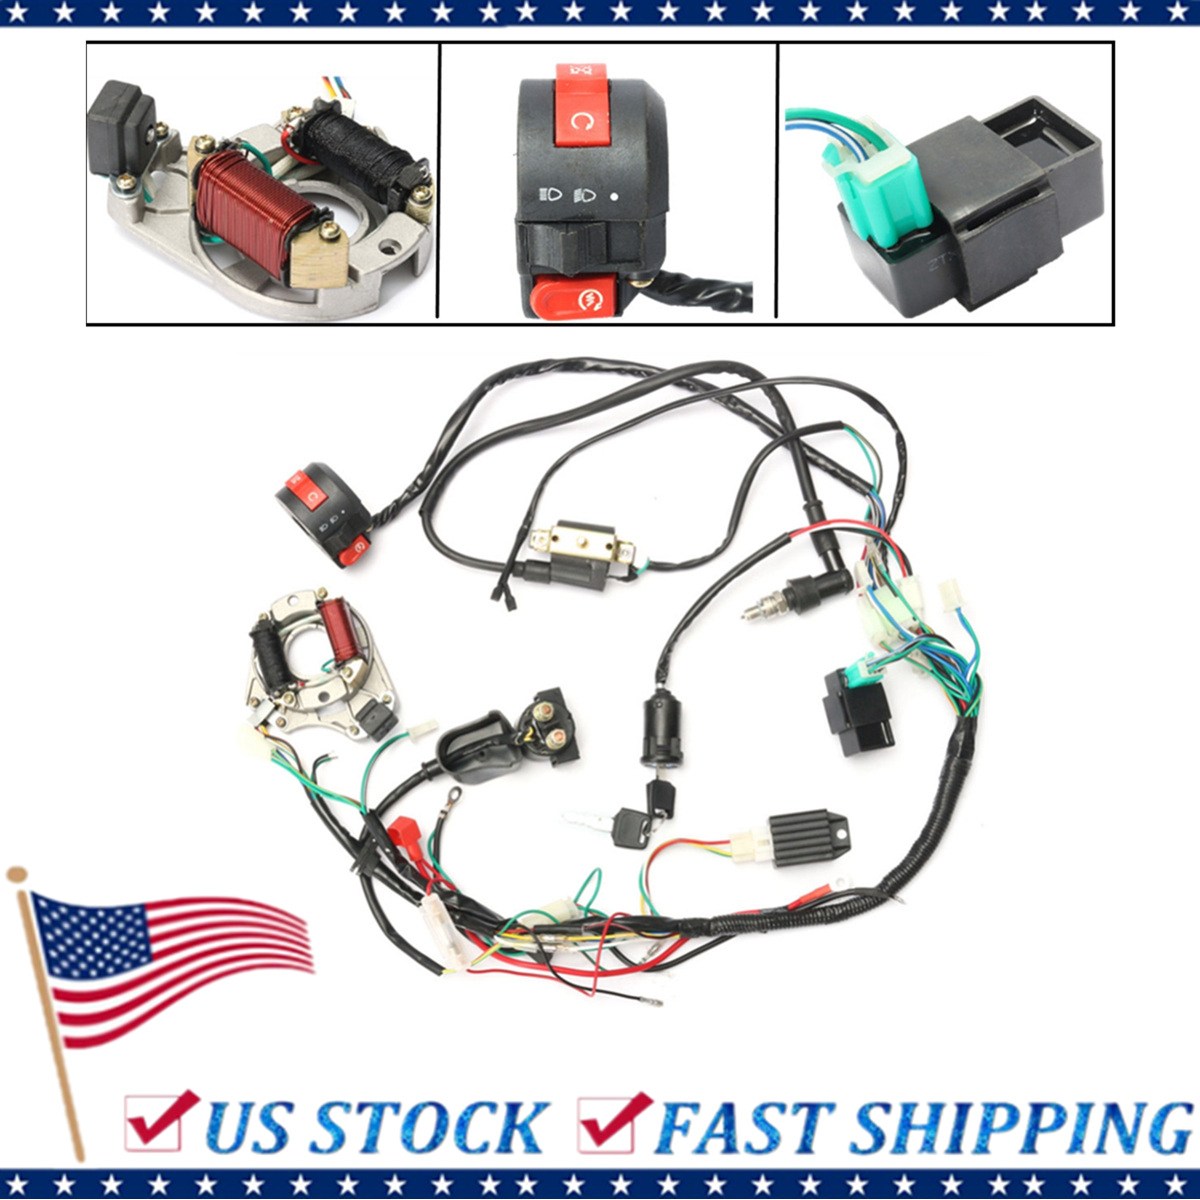 small resolution of 1 set 50 70 90 110cc cdi wire harness assembly wiring kit atv1 set 50 70 90 110cc cdi wire harness assembly wiring kit atv electric start quad only fit for